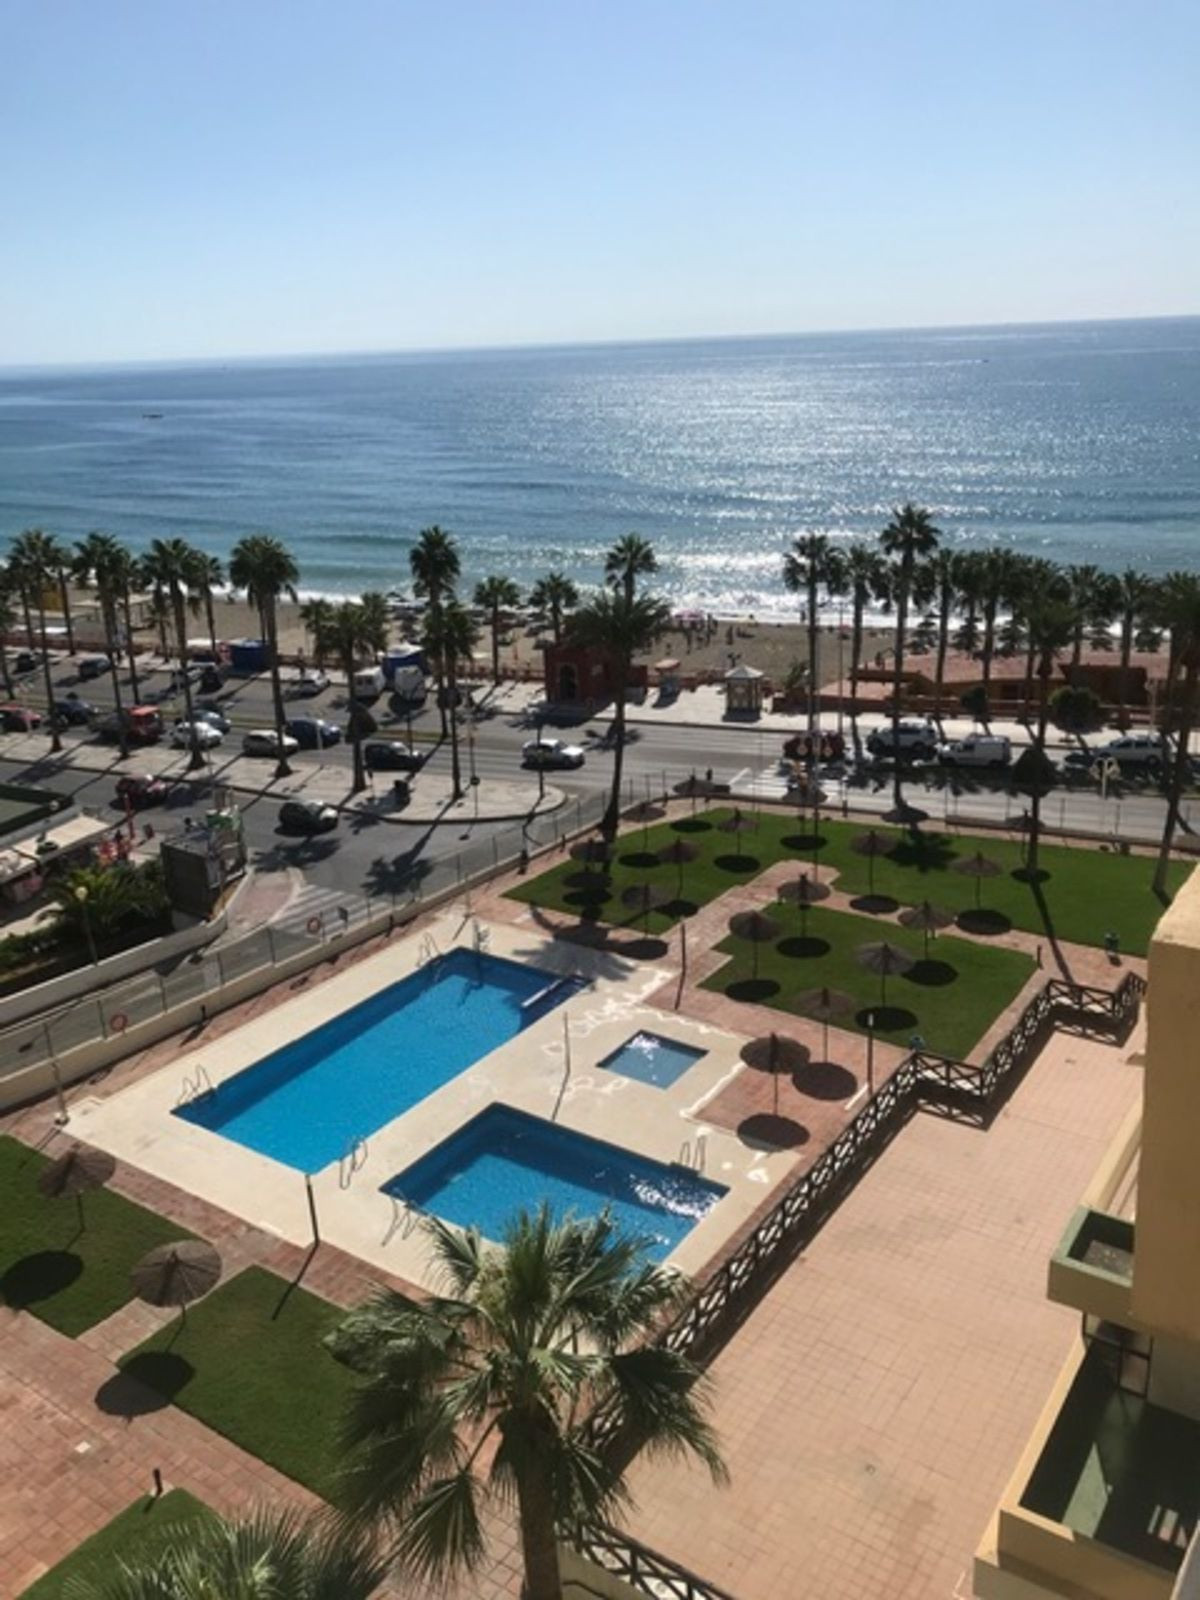 Just 90 meters from the beach, on the coast of Benalmadena, you can find this cozy apartment with se, Spain